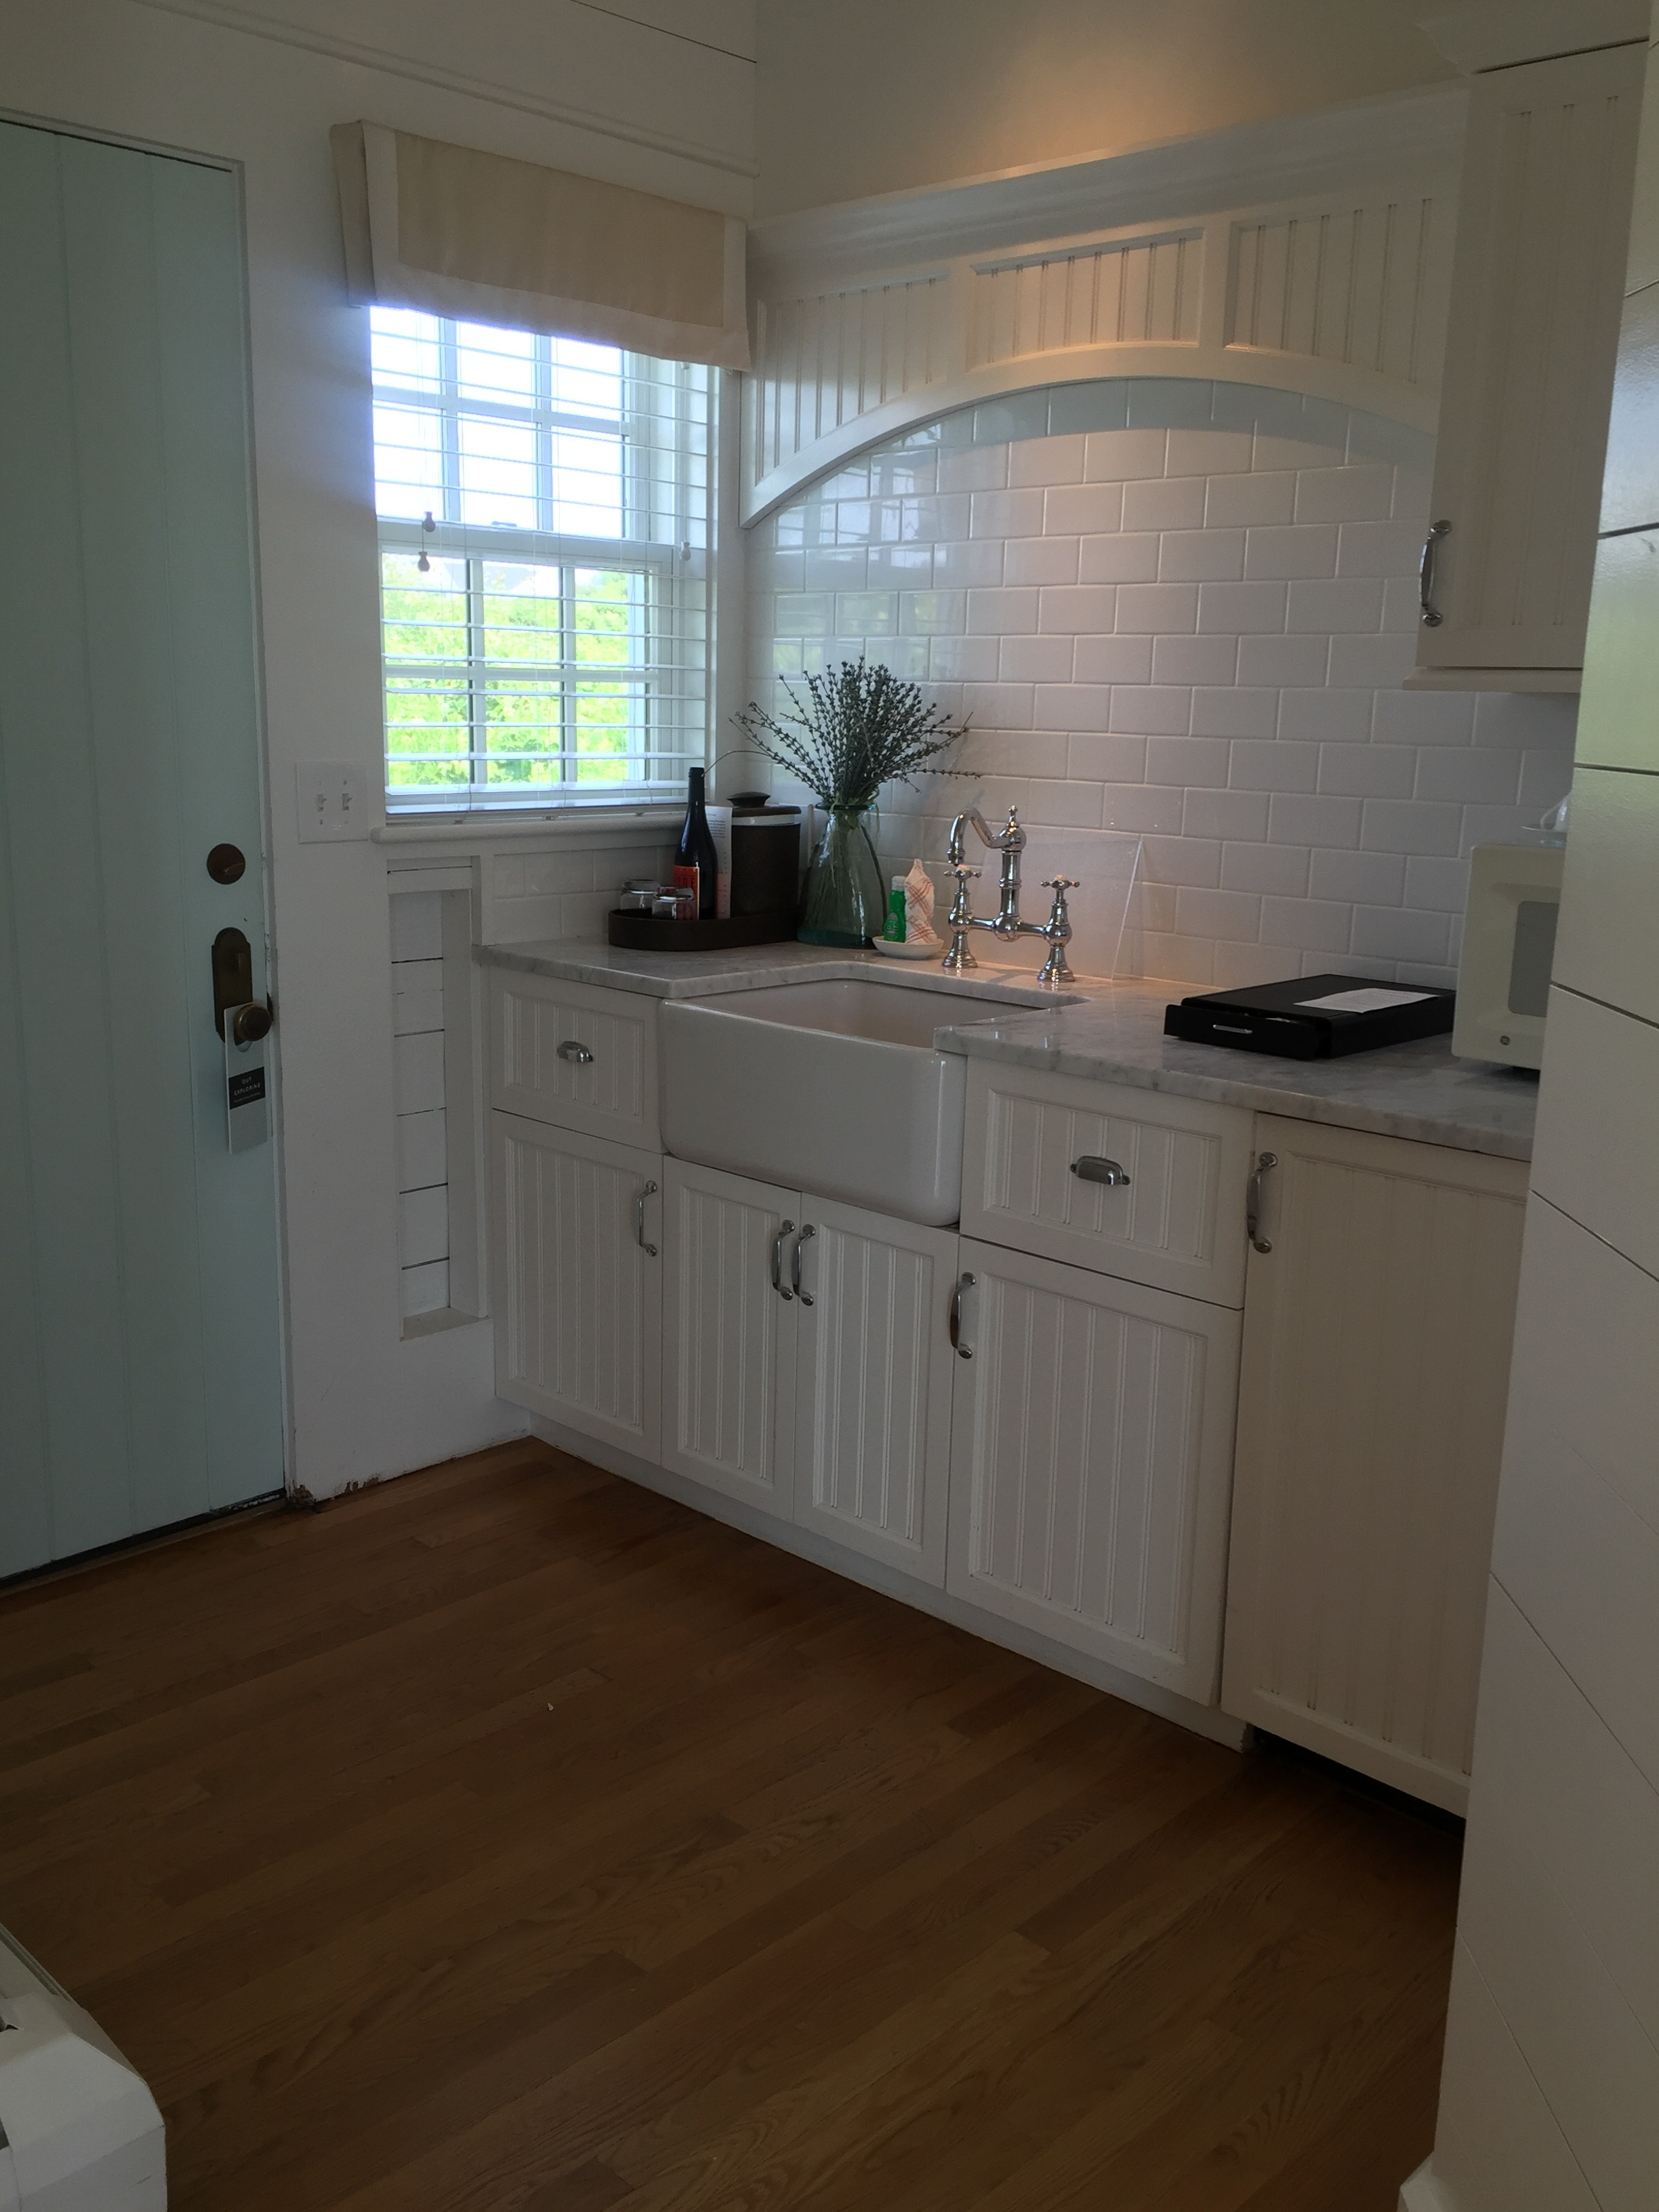 Just inside of the front door... this cute kitchenette